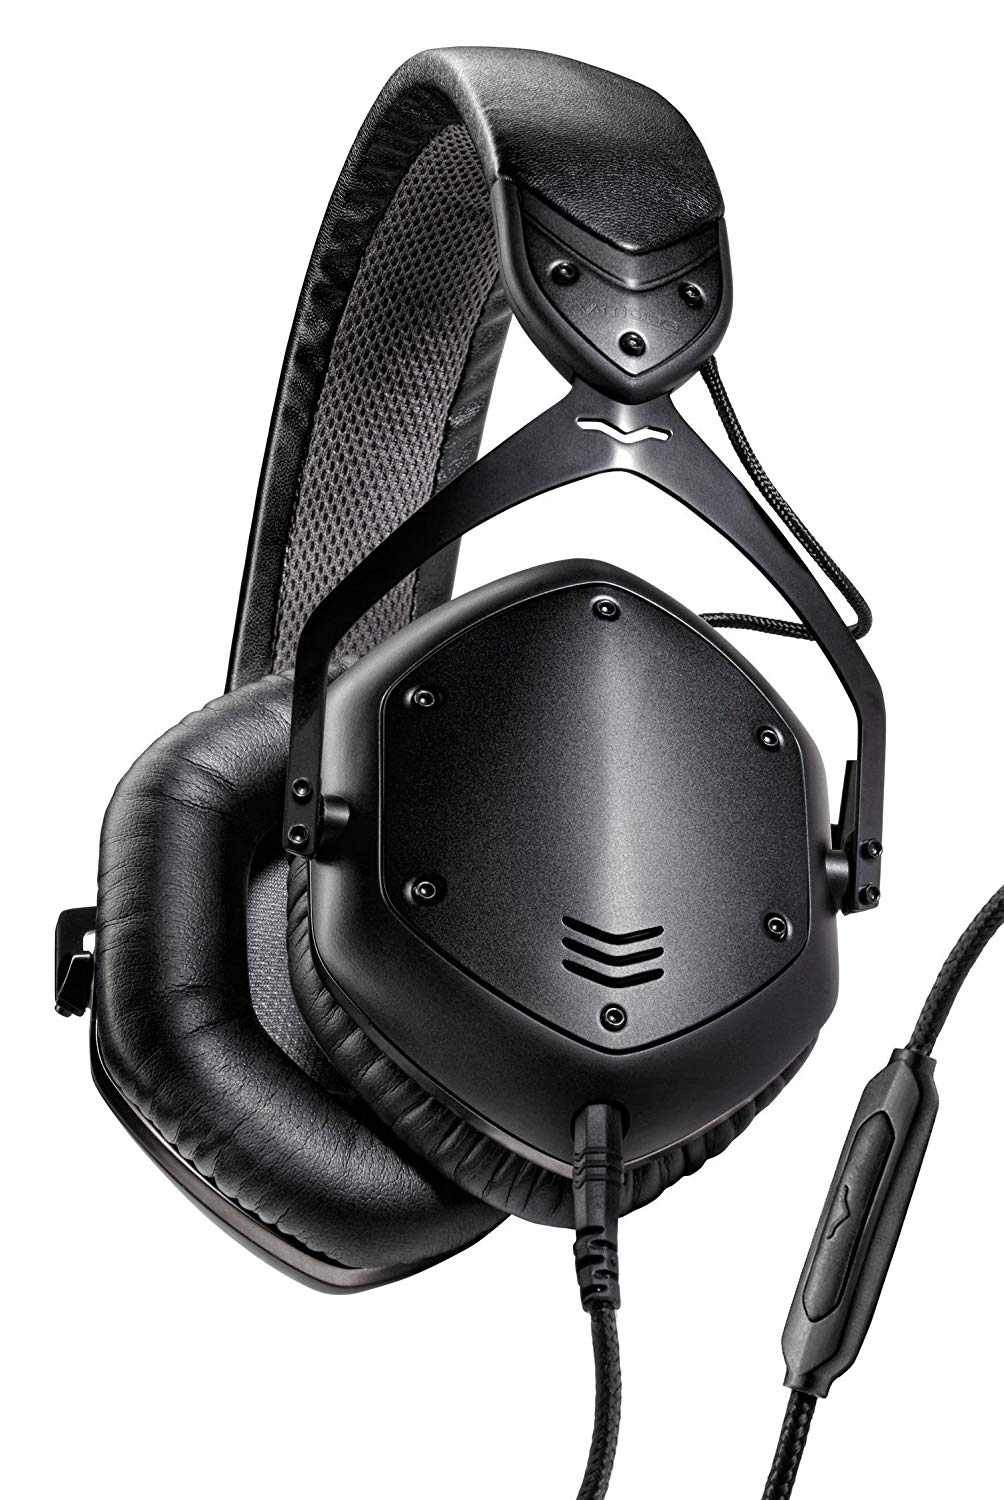 5. V-MODA Crossfade LP2 Vocal Limited Edition - Headphones under $200